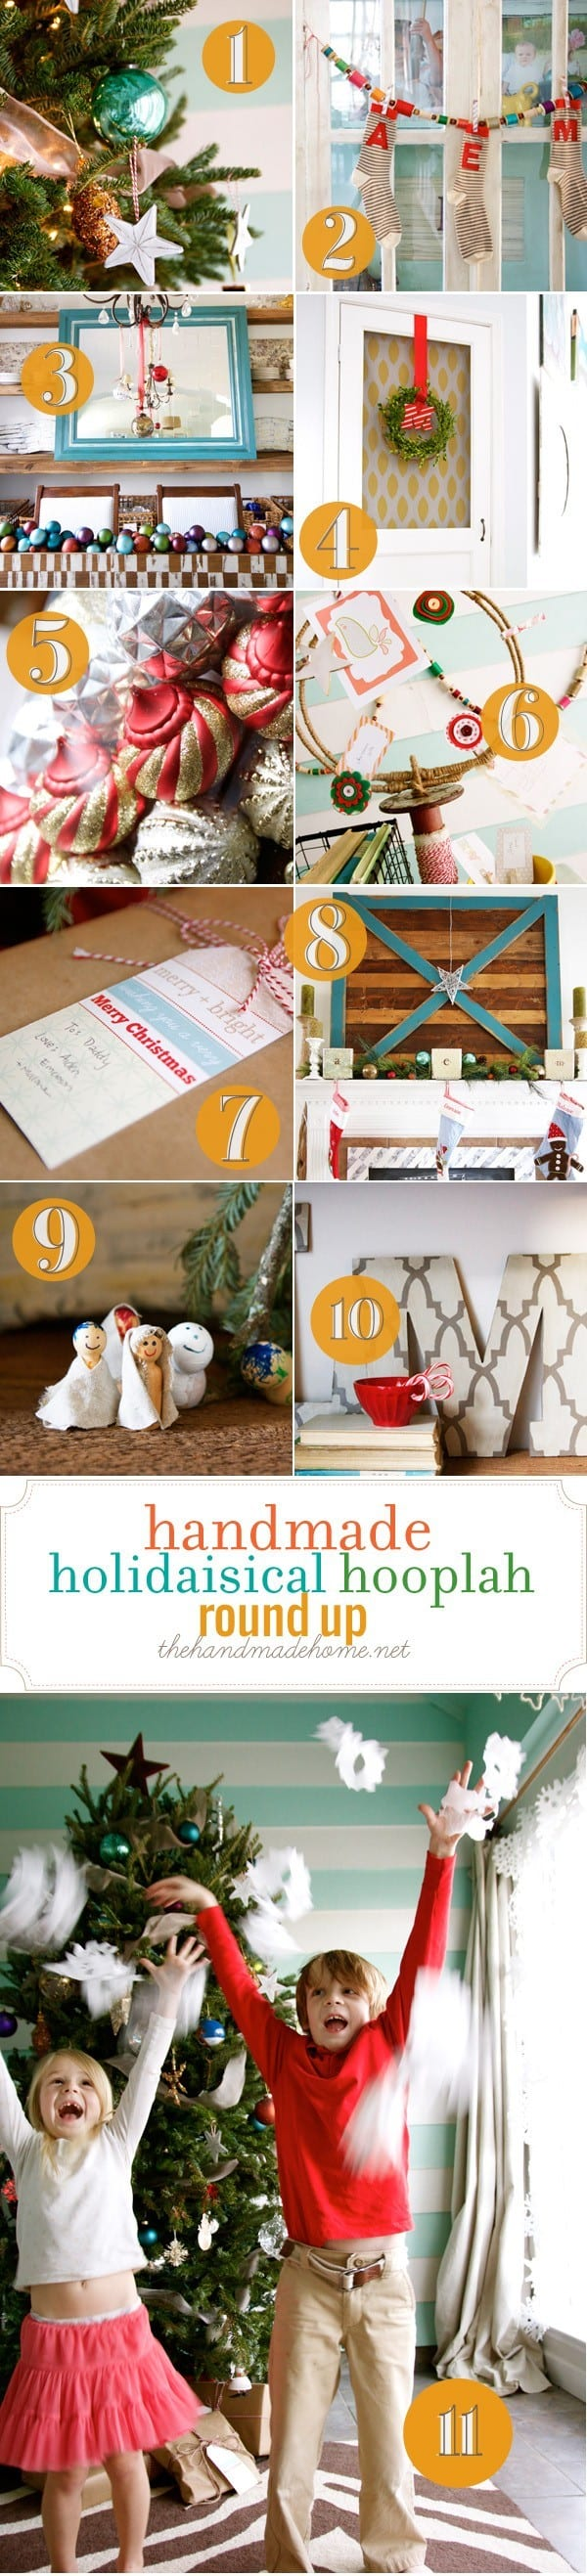 handmade_holidaisical_hooplah_roundup